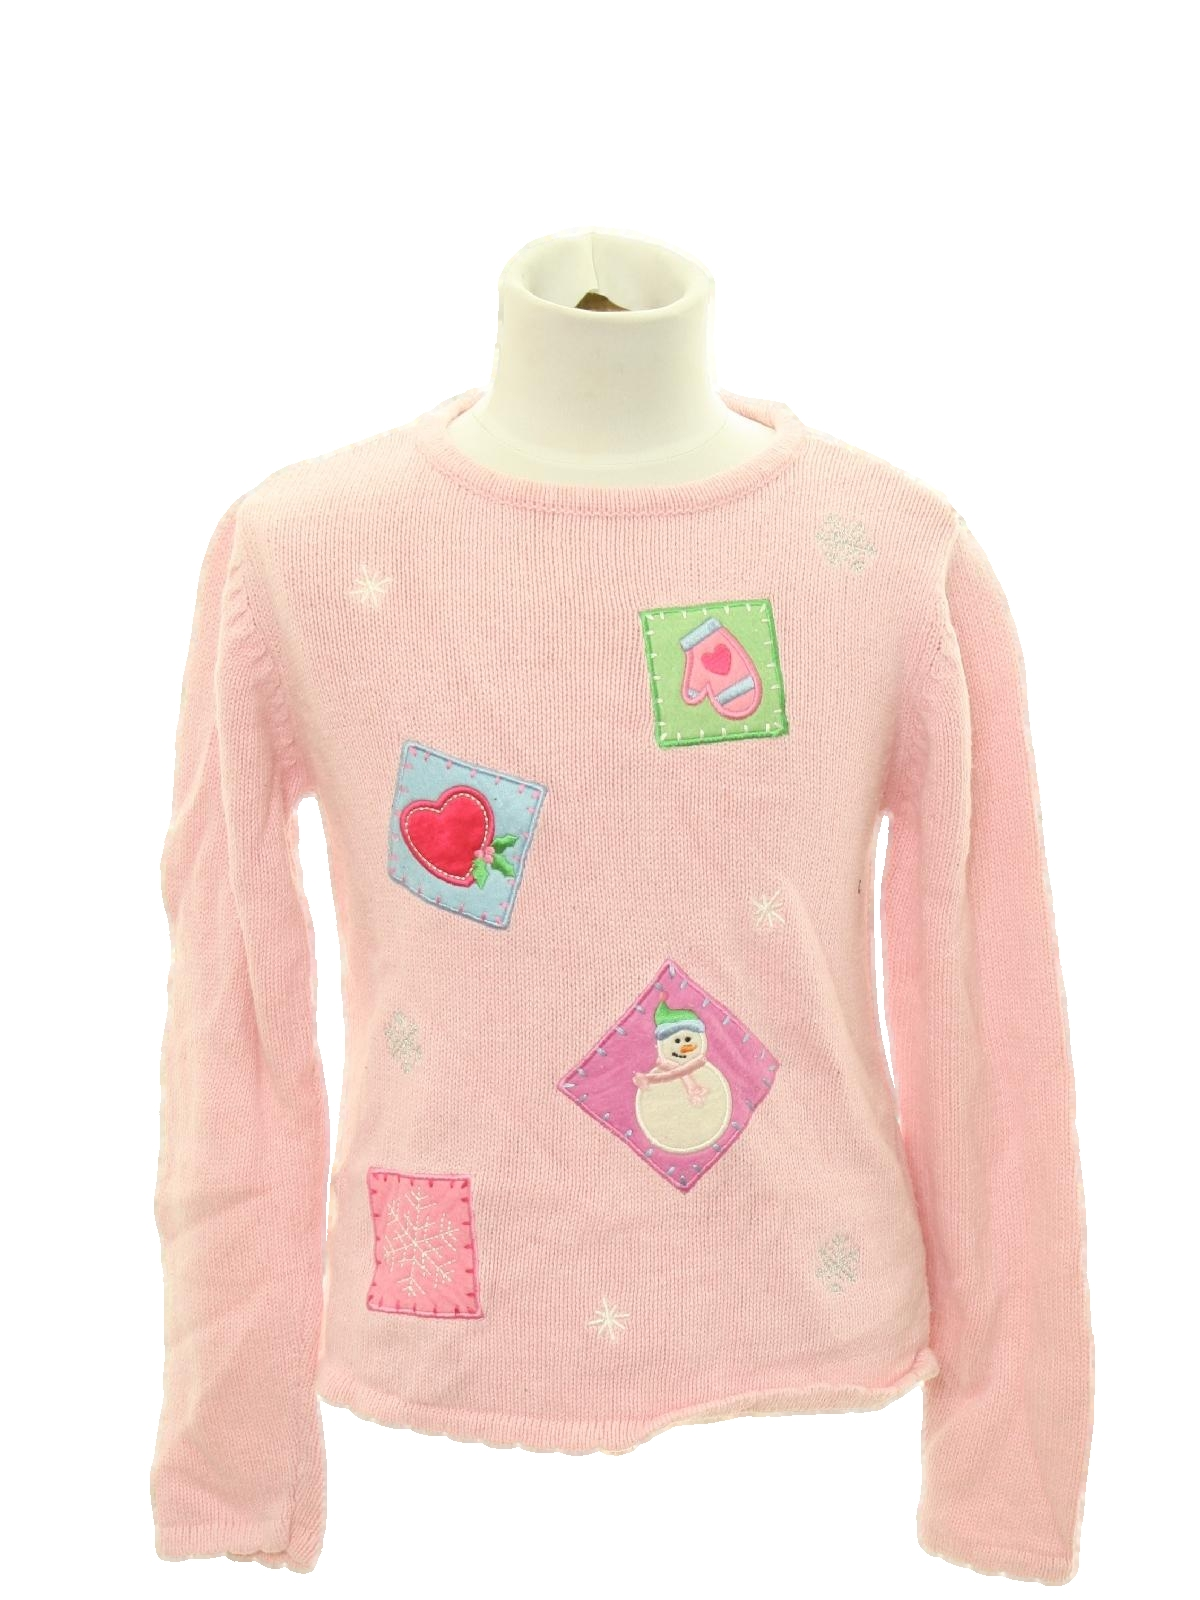 womenschilds ugly christmas sweater missing label girls childs light pink background cotton ramie blend pullover longsleeve ugly christmas sweater - Pink Ugly Christmas Sweater